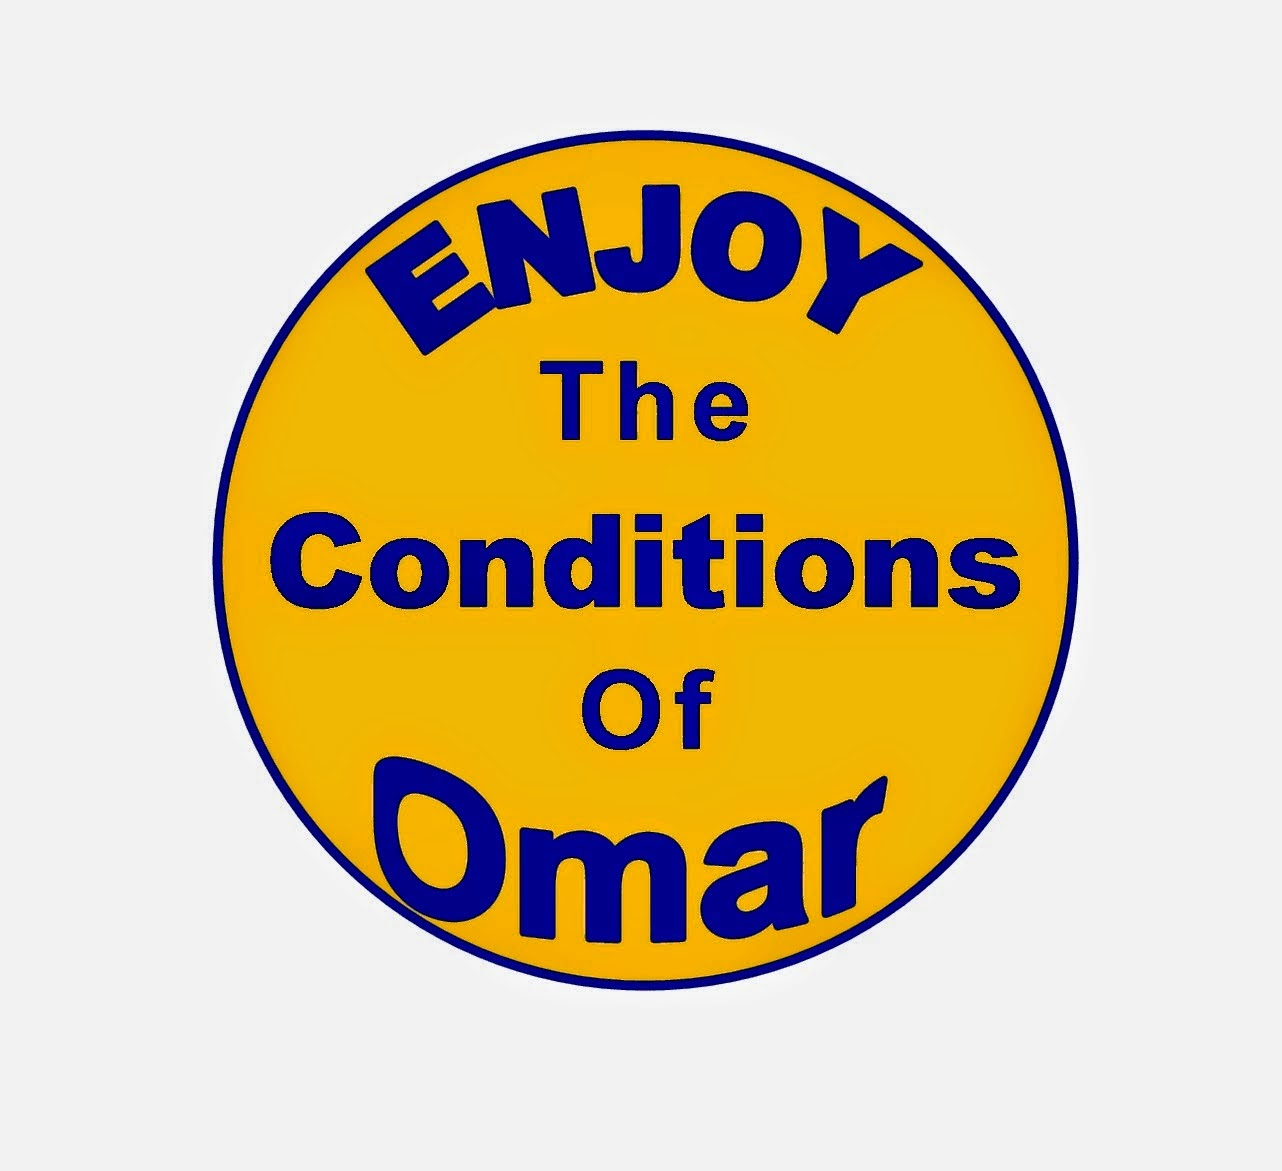 Enjoy The Conditions of Omar